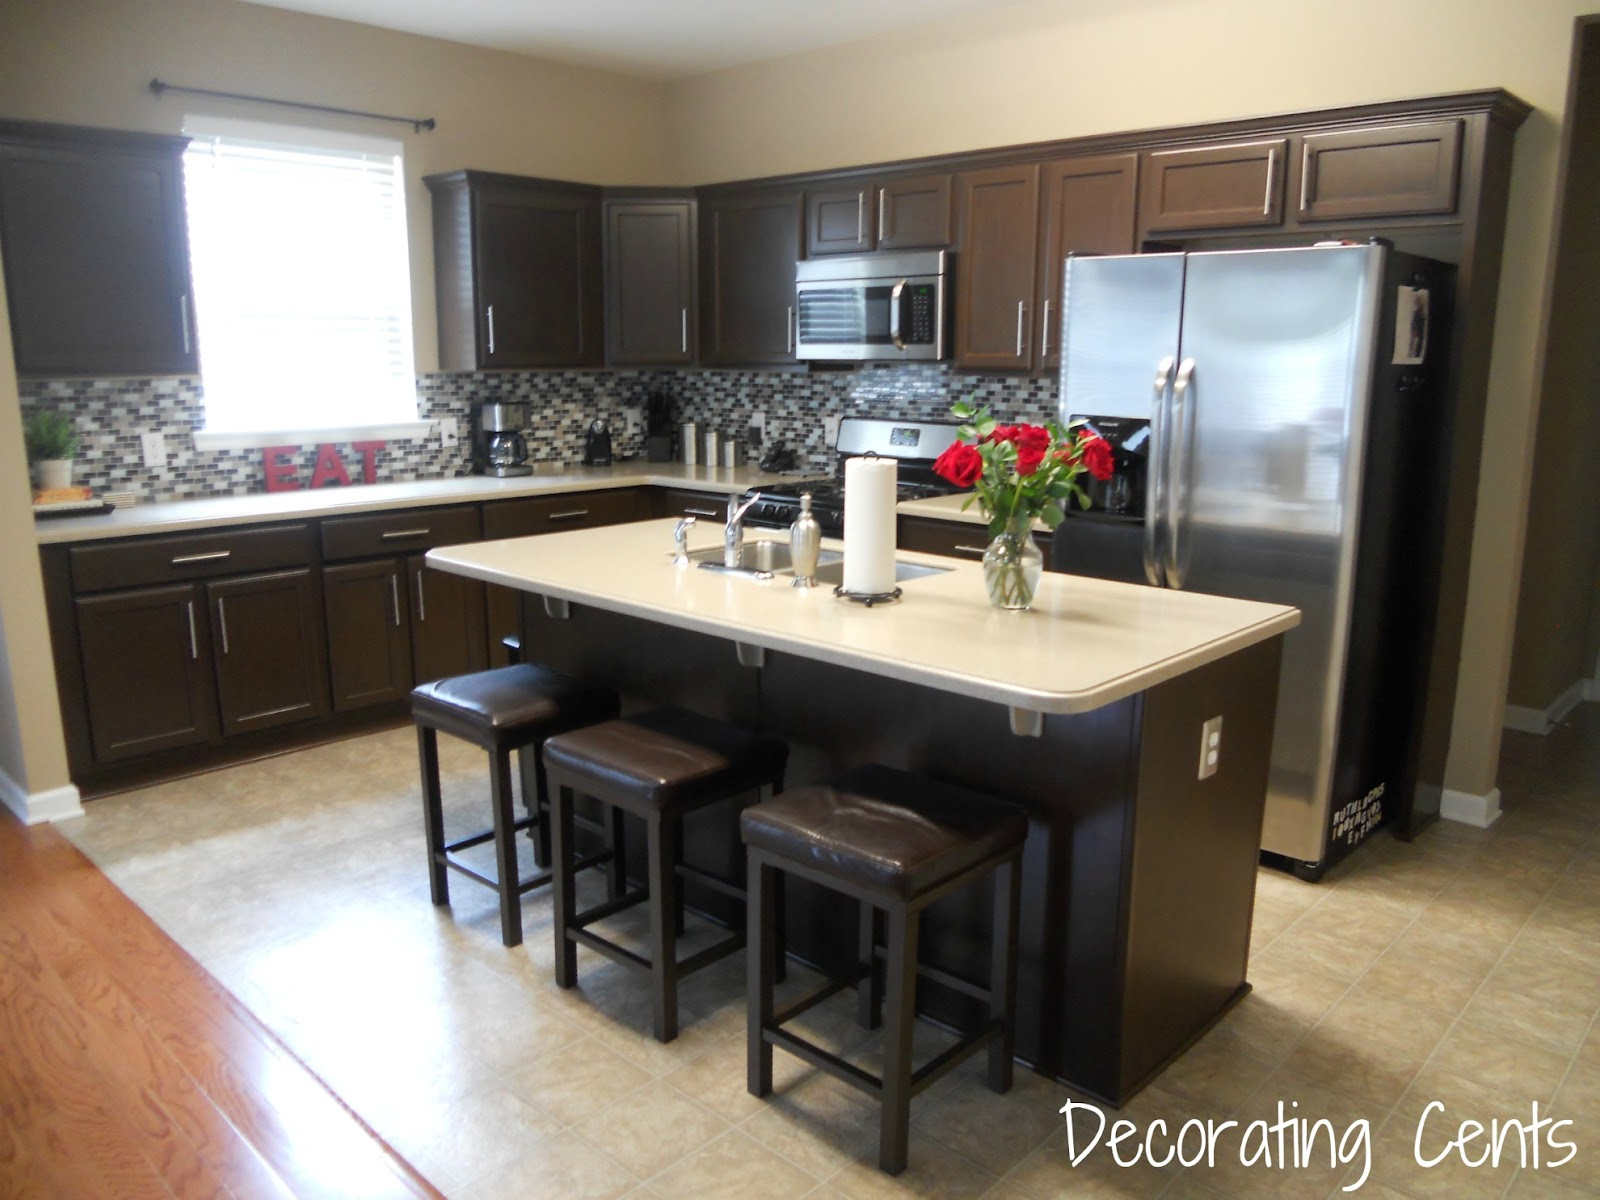 Decorating cents kitchen cabinets revealed for New kitchen cabinets